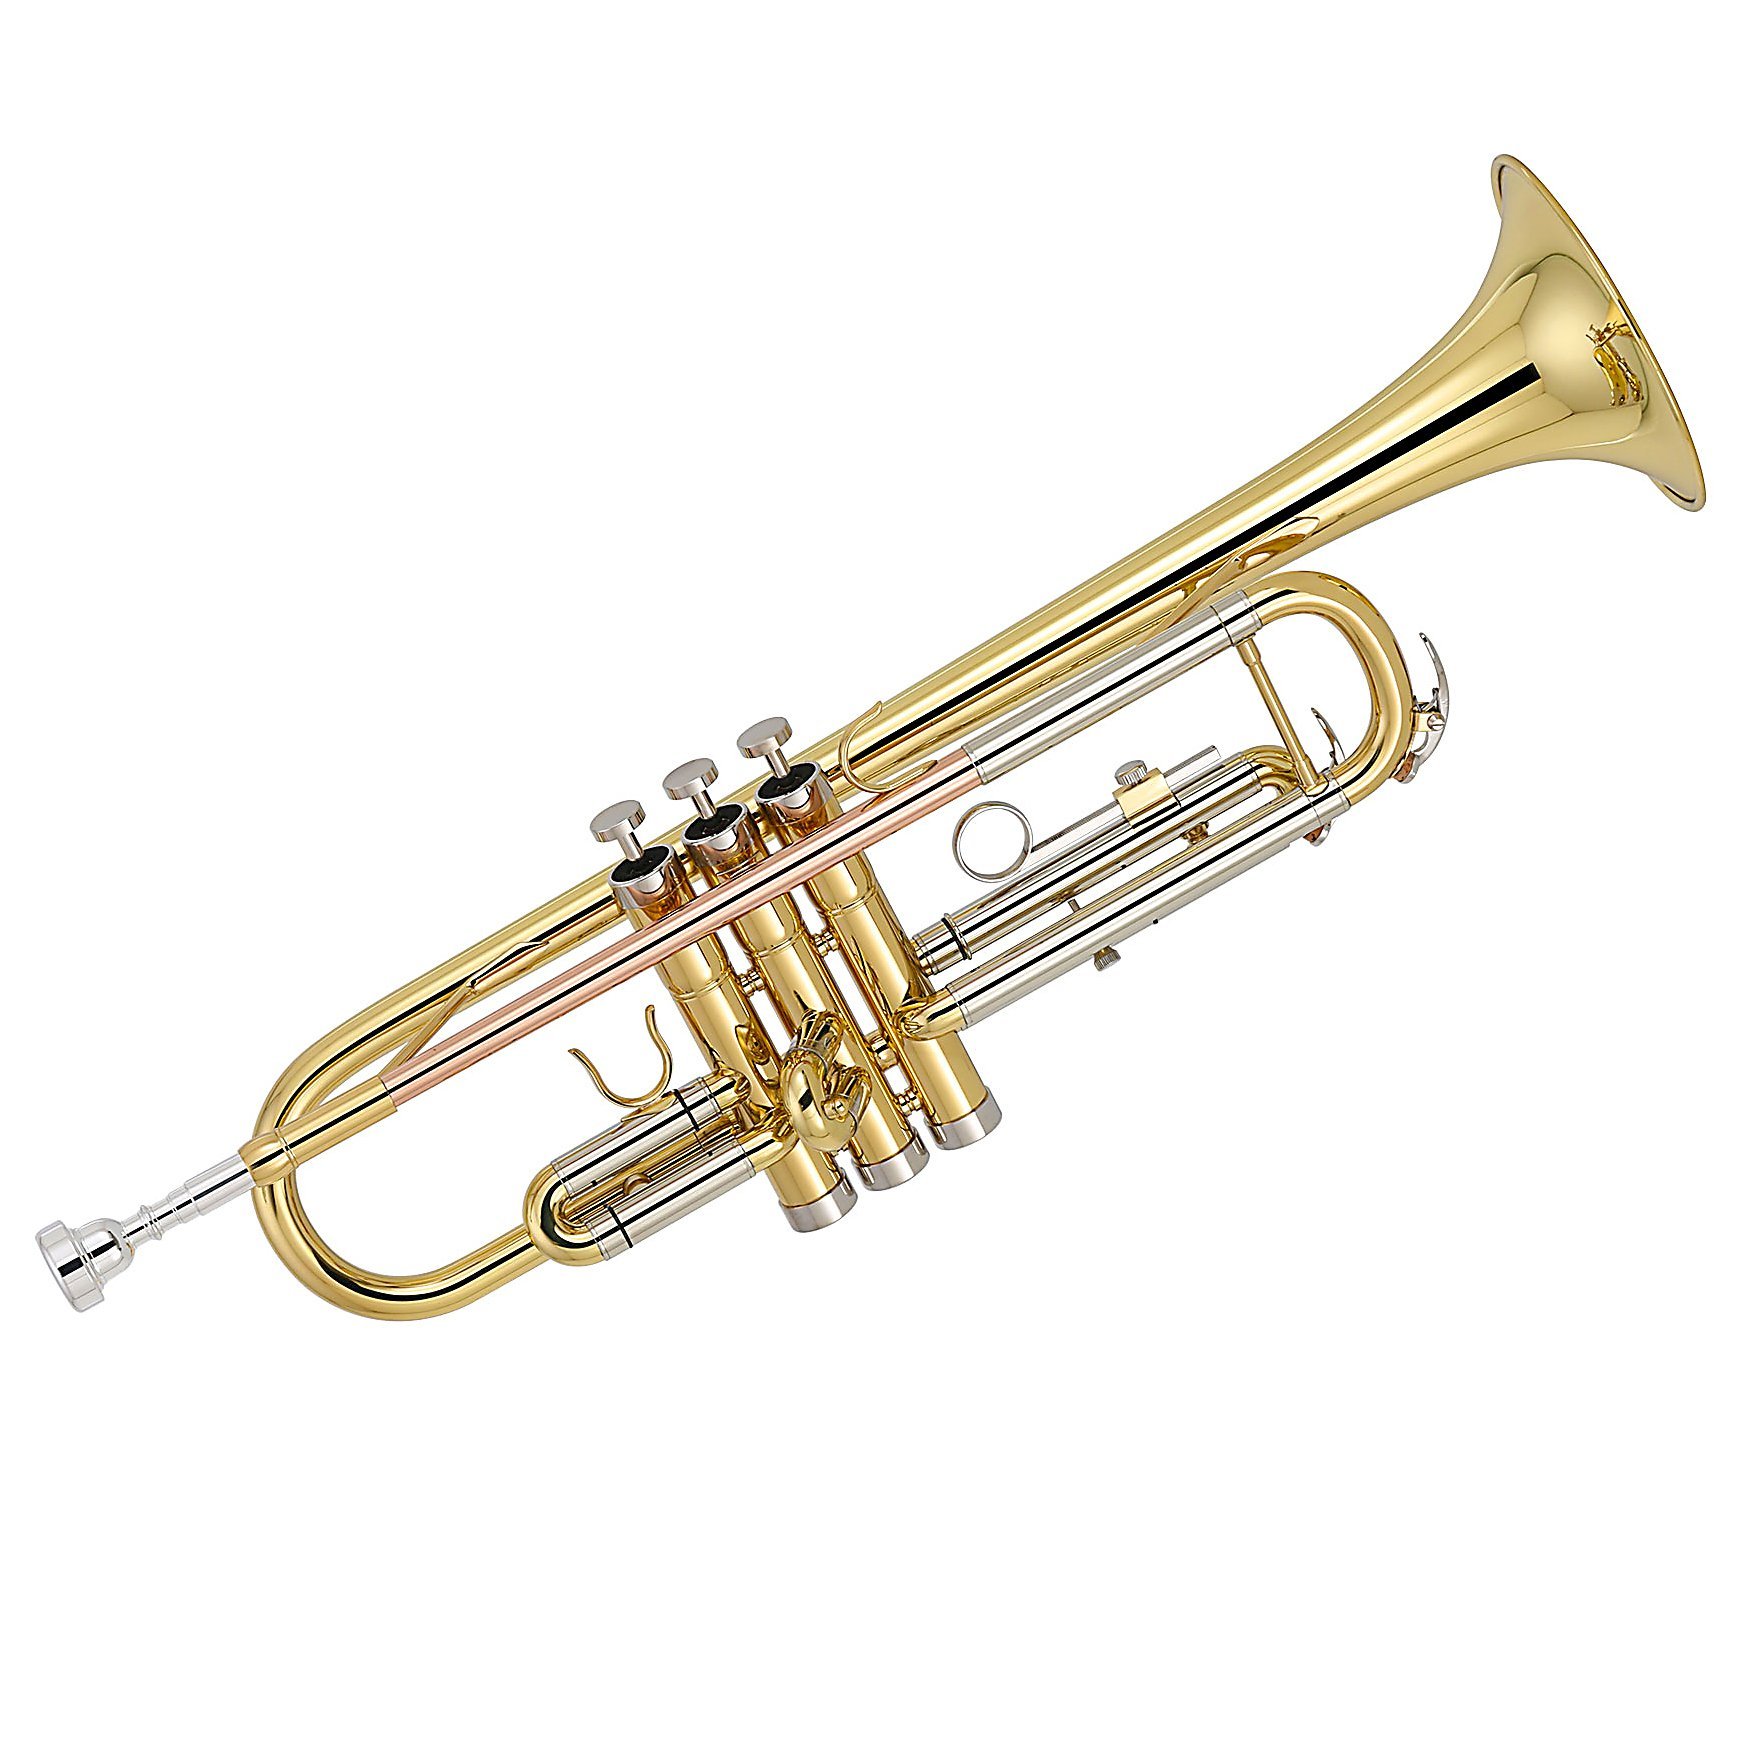 Kaizer Trumpet B Flat Bb 3000 C Series Gold Lacquer Includes Case Mouthpiece and Accessories TRP-3000LQRC